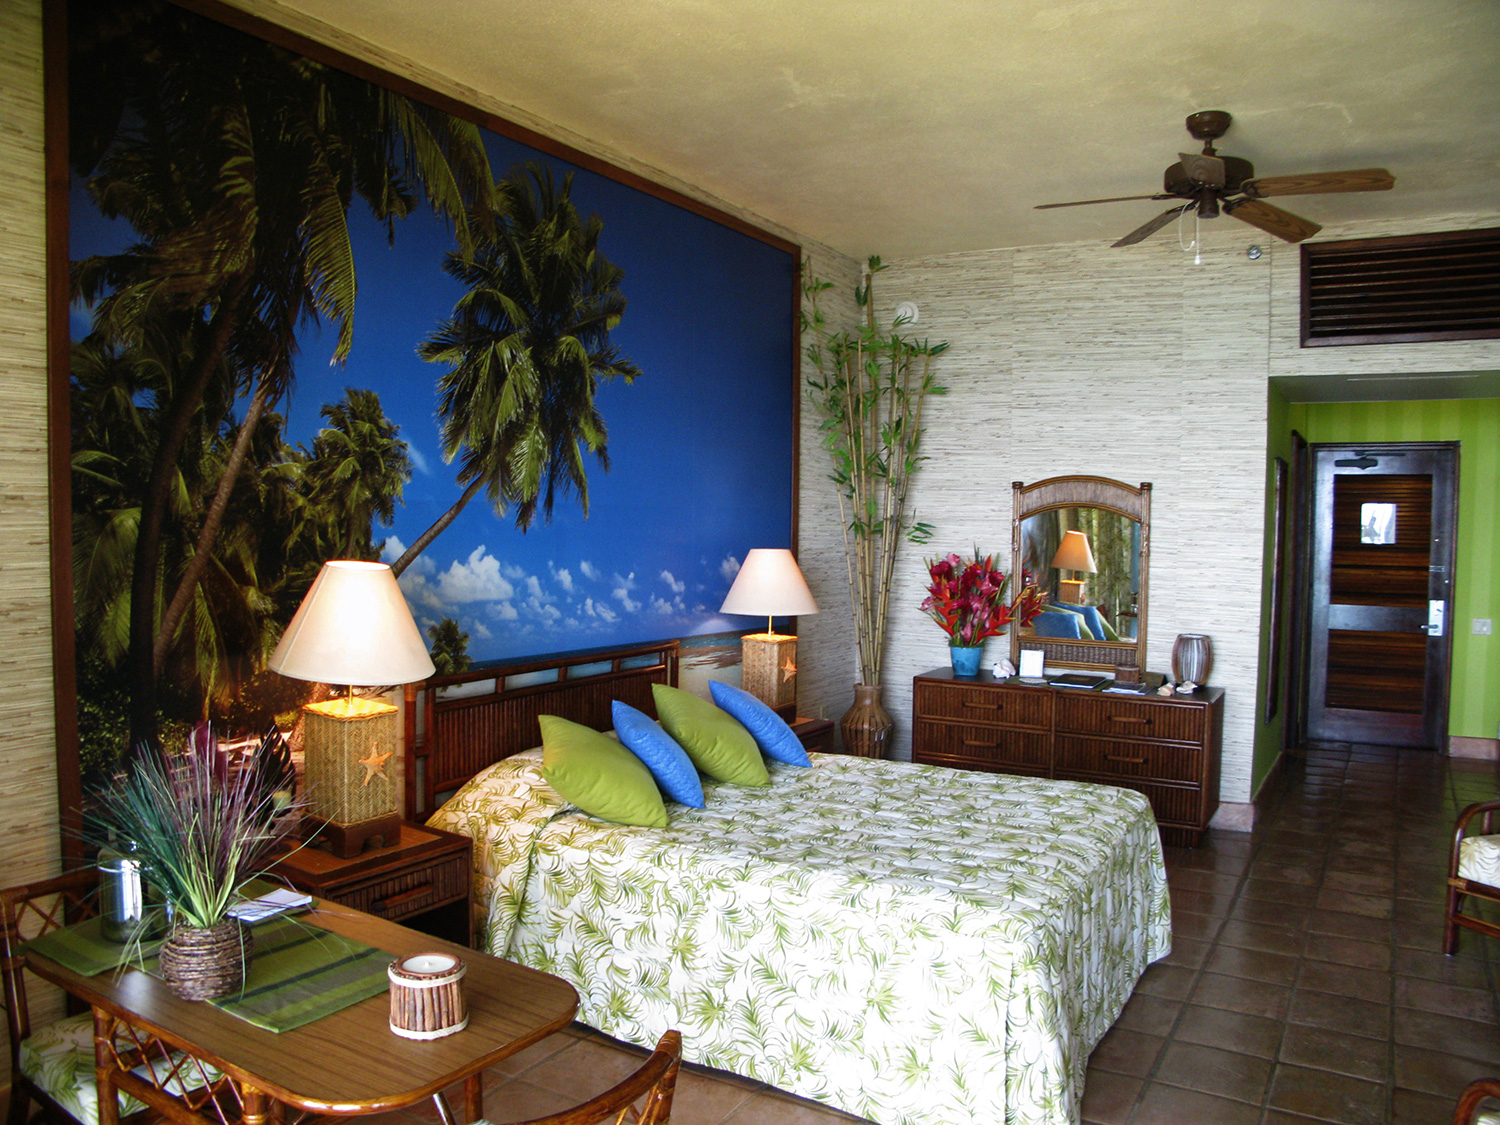 Tropical resort hotel room for Mr. and Mrs. Russo (David DeLuise & Maria Canals-Barrera).